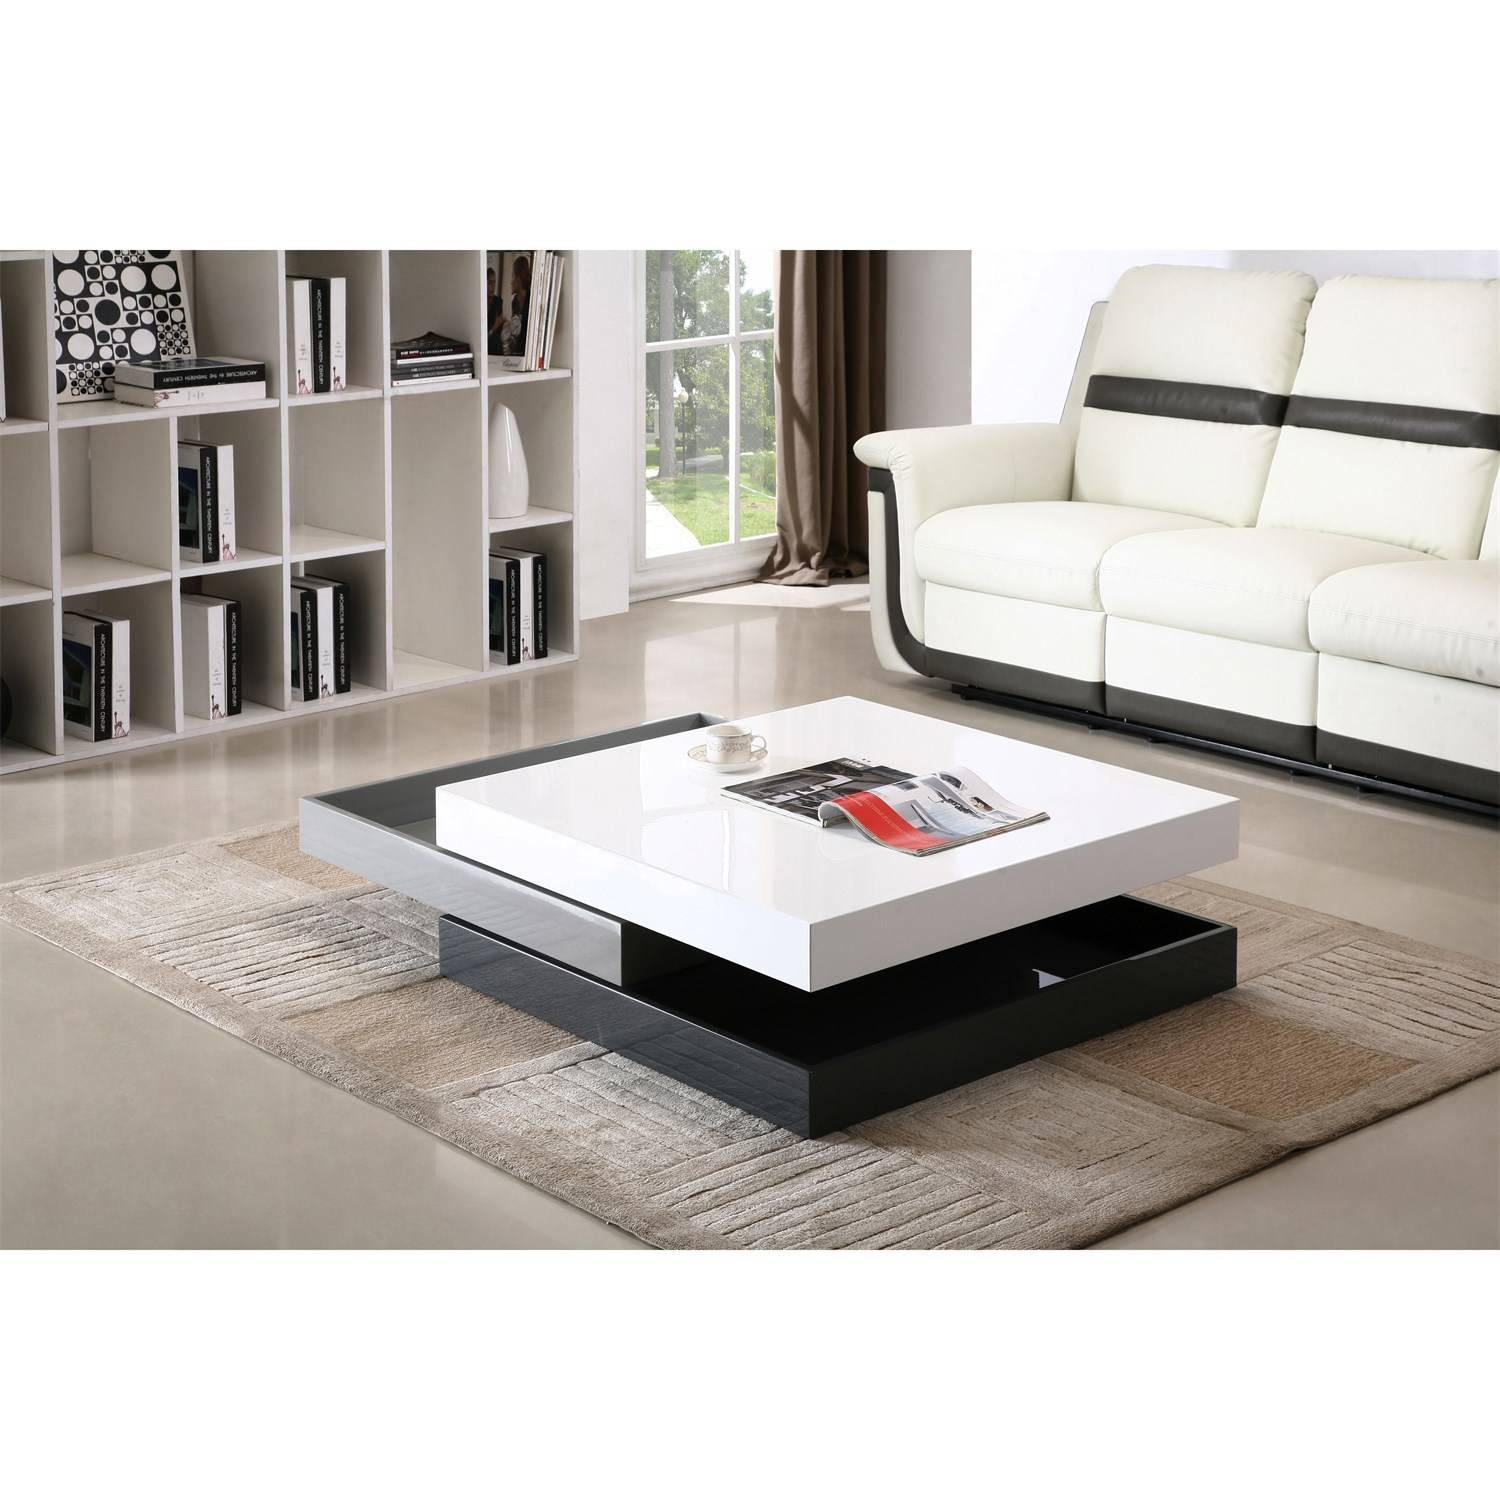 J&m Furniture Coffee Tables | Homeclick with Modern Coffee Tables (Image 15 of 30)